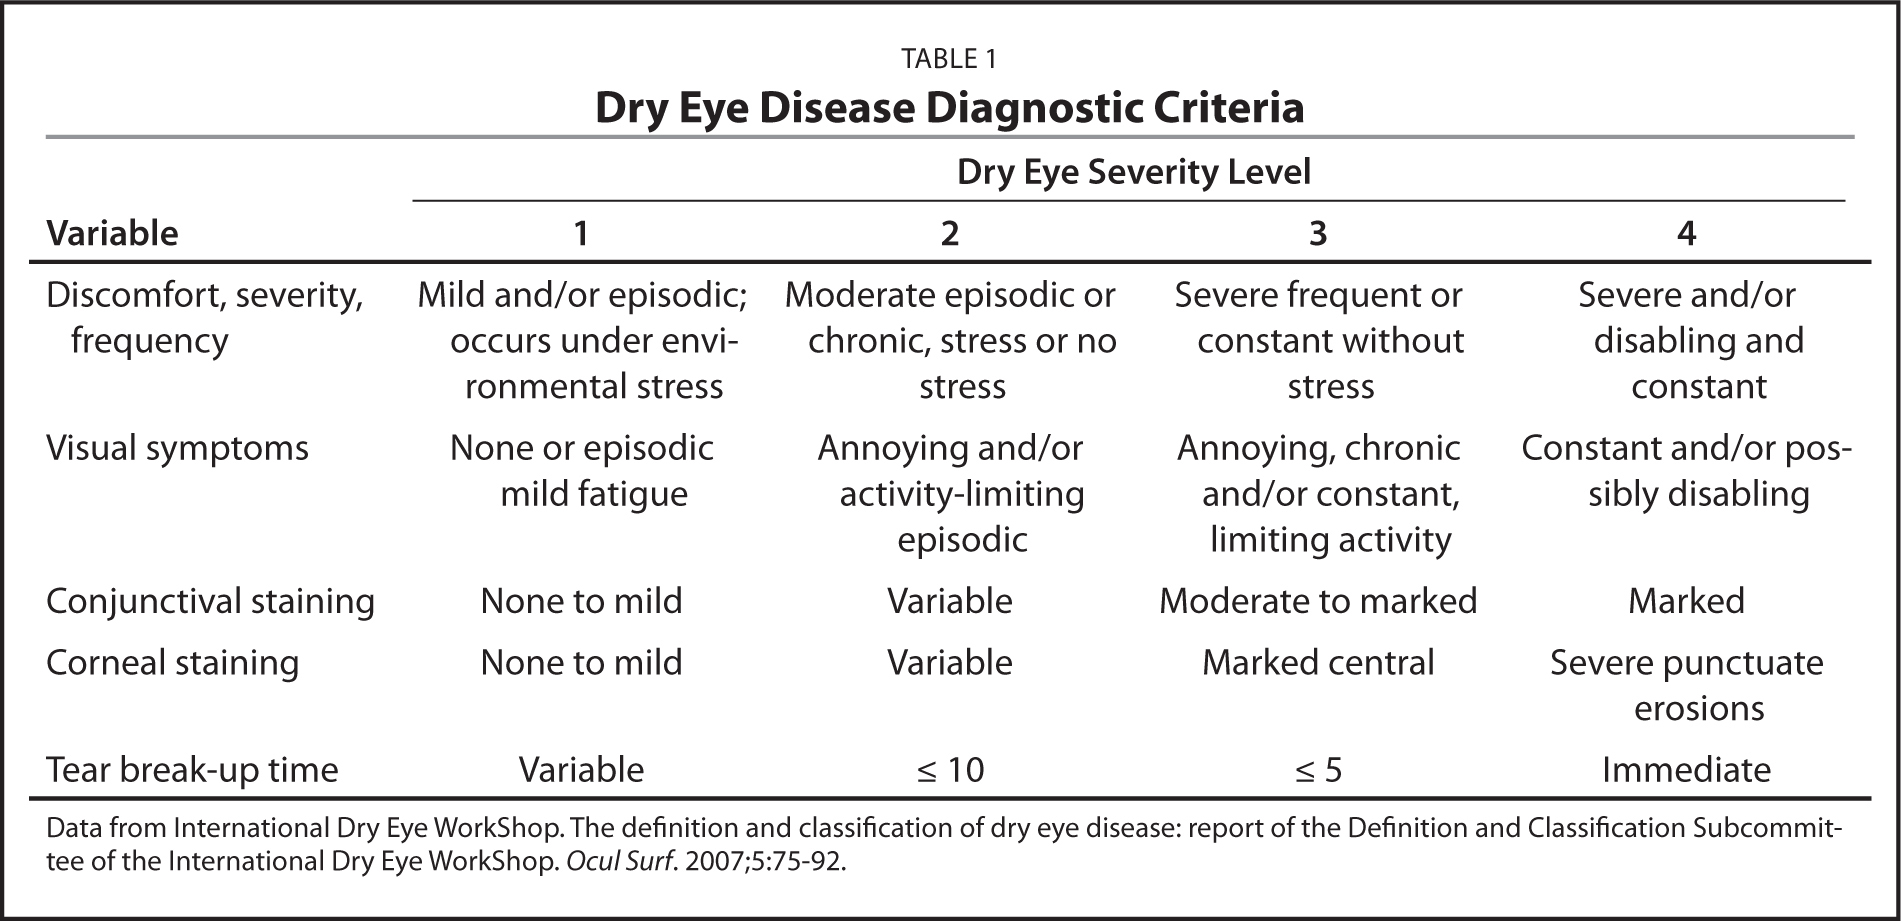 Dry Eye Disease Diagnostic Criteria